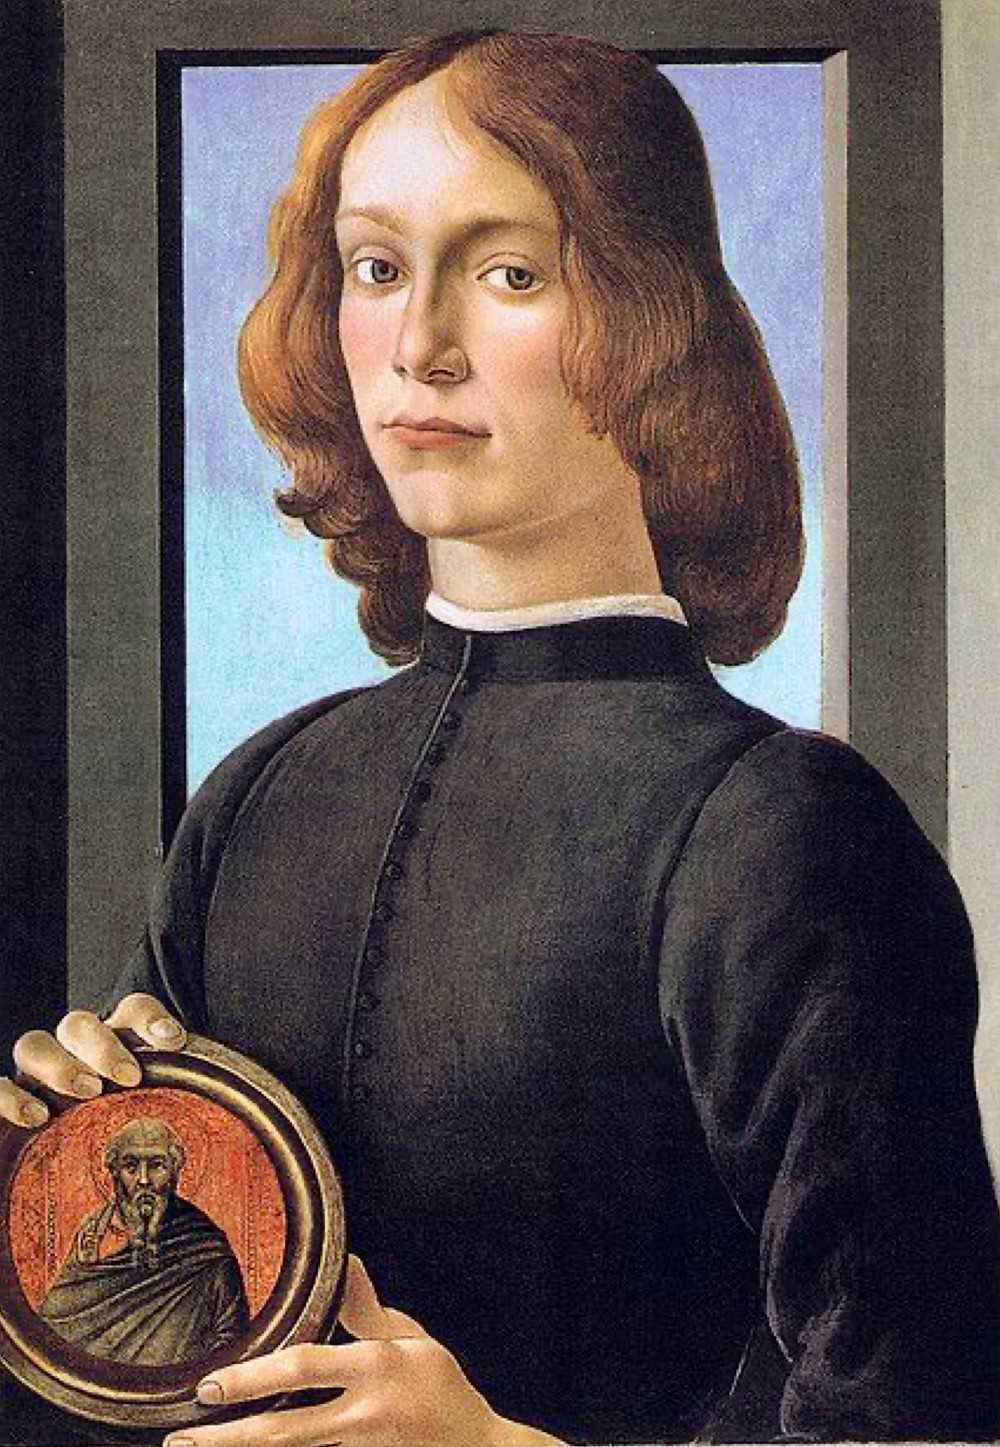 Botticelli, Man Holding a Roundel, late 1470s to early 1480s -- sold for $92 million in 2021